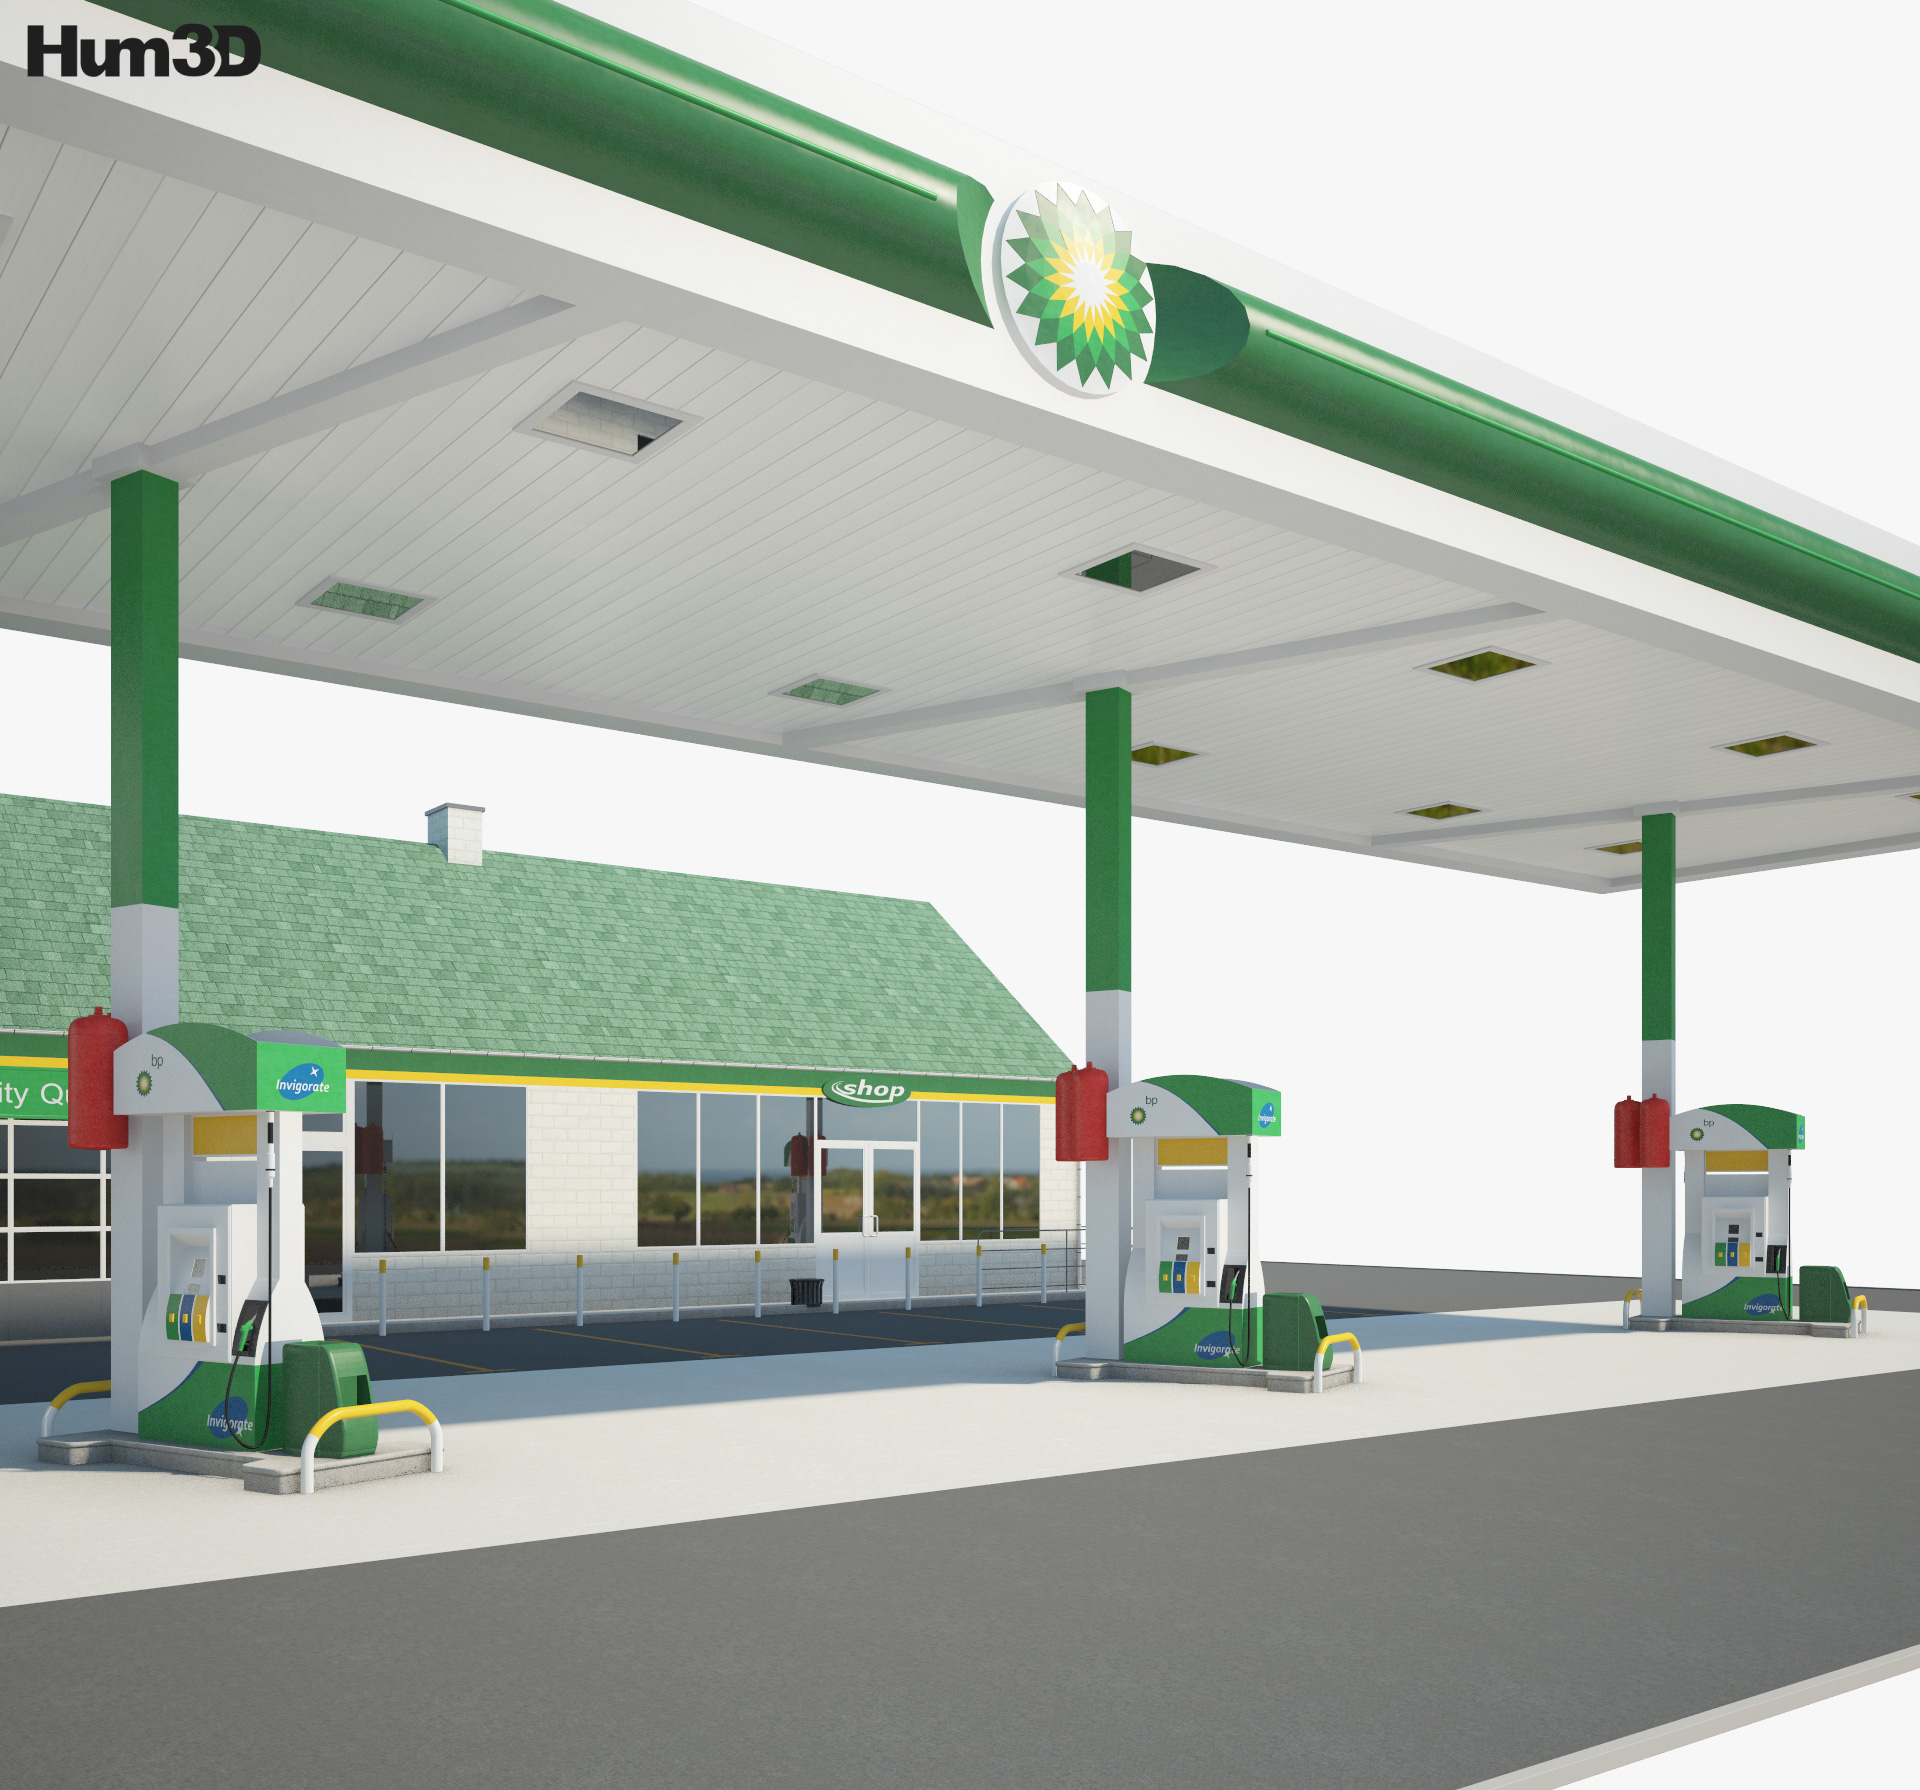 BP gas station 001 3d model